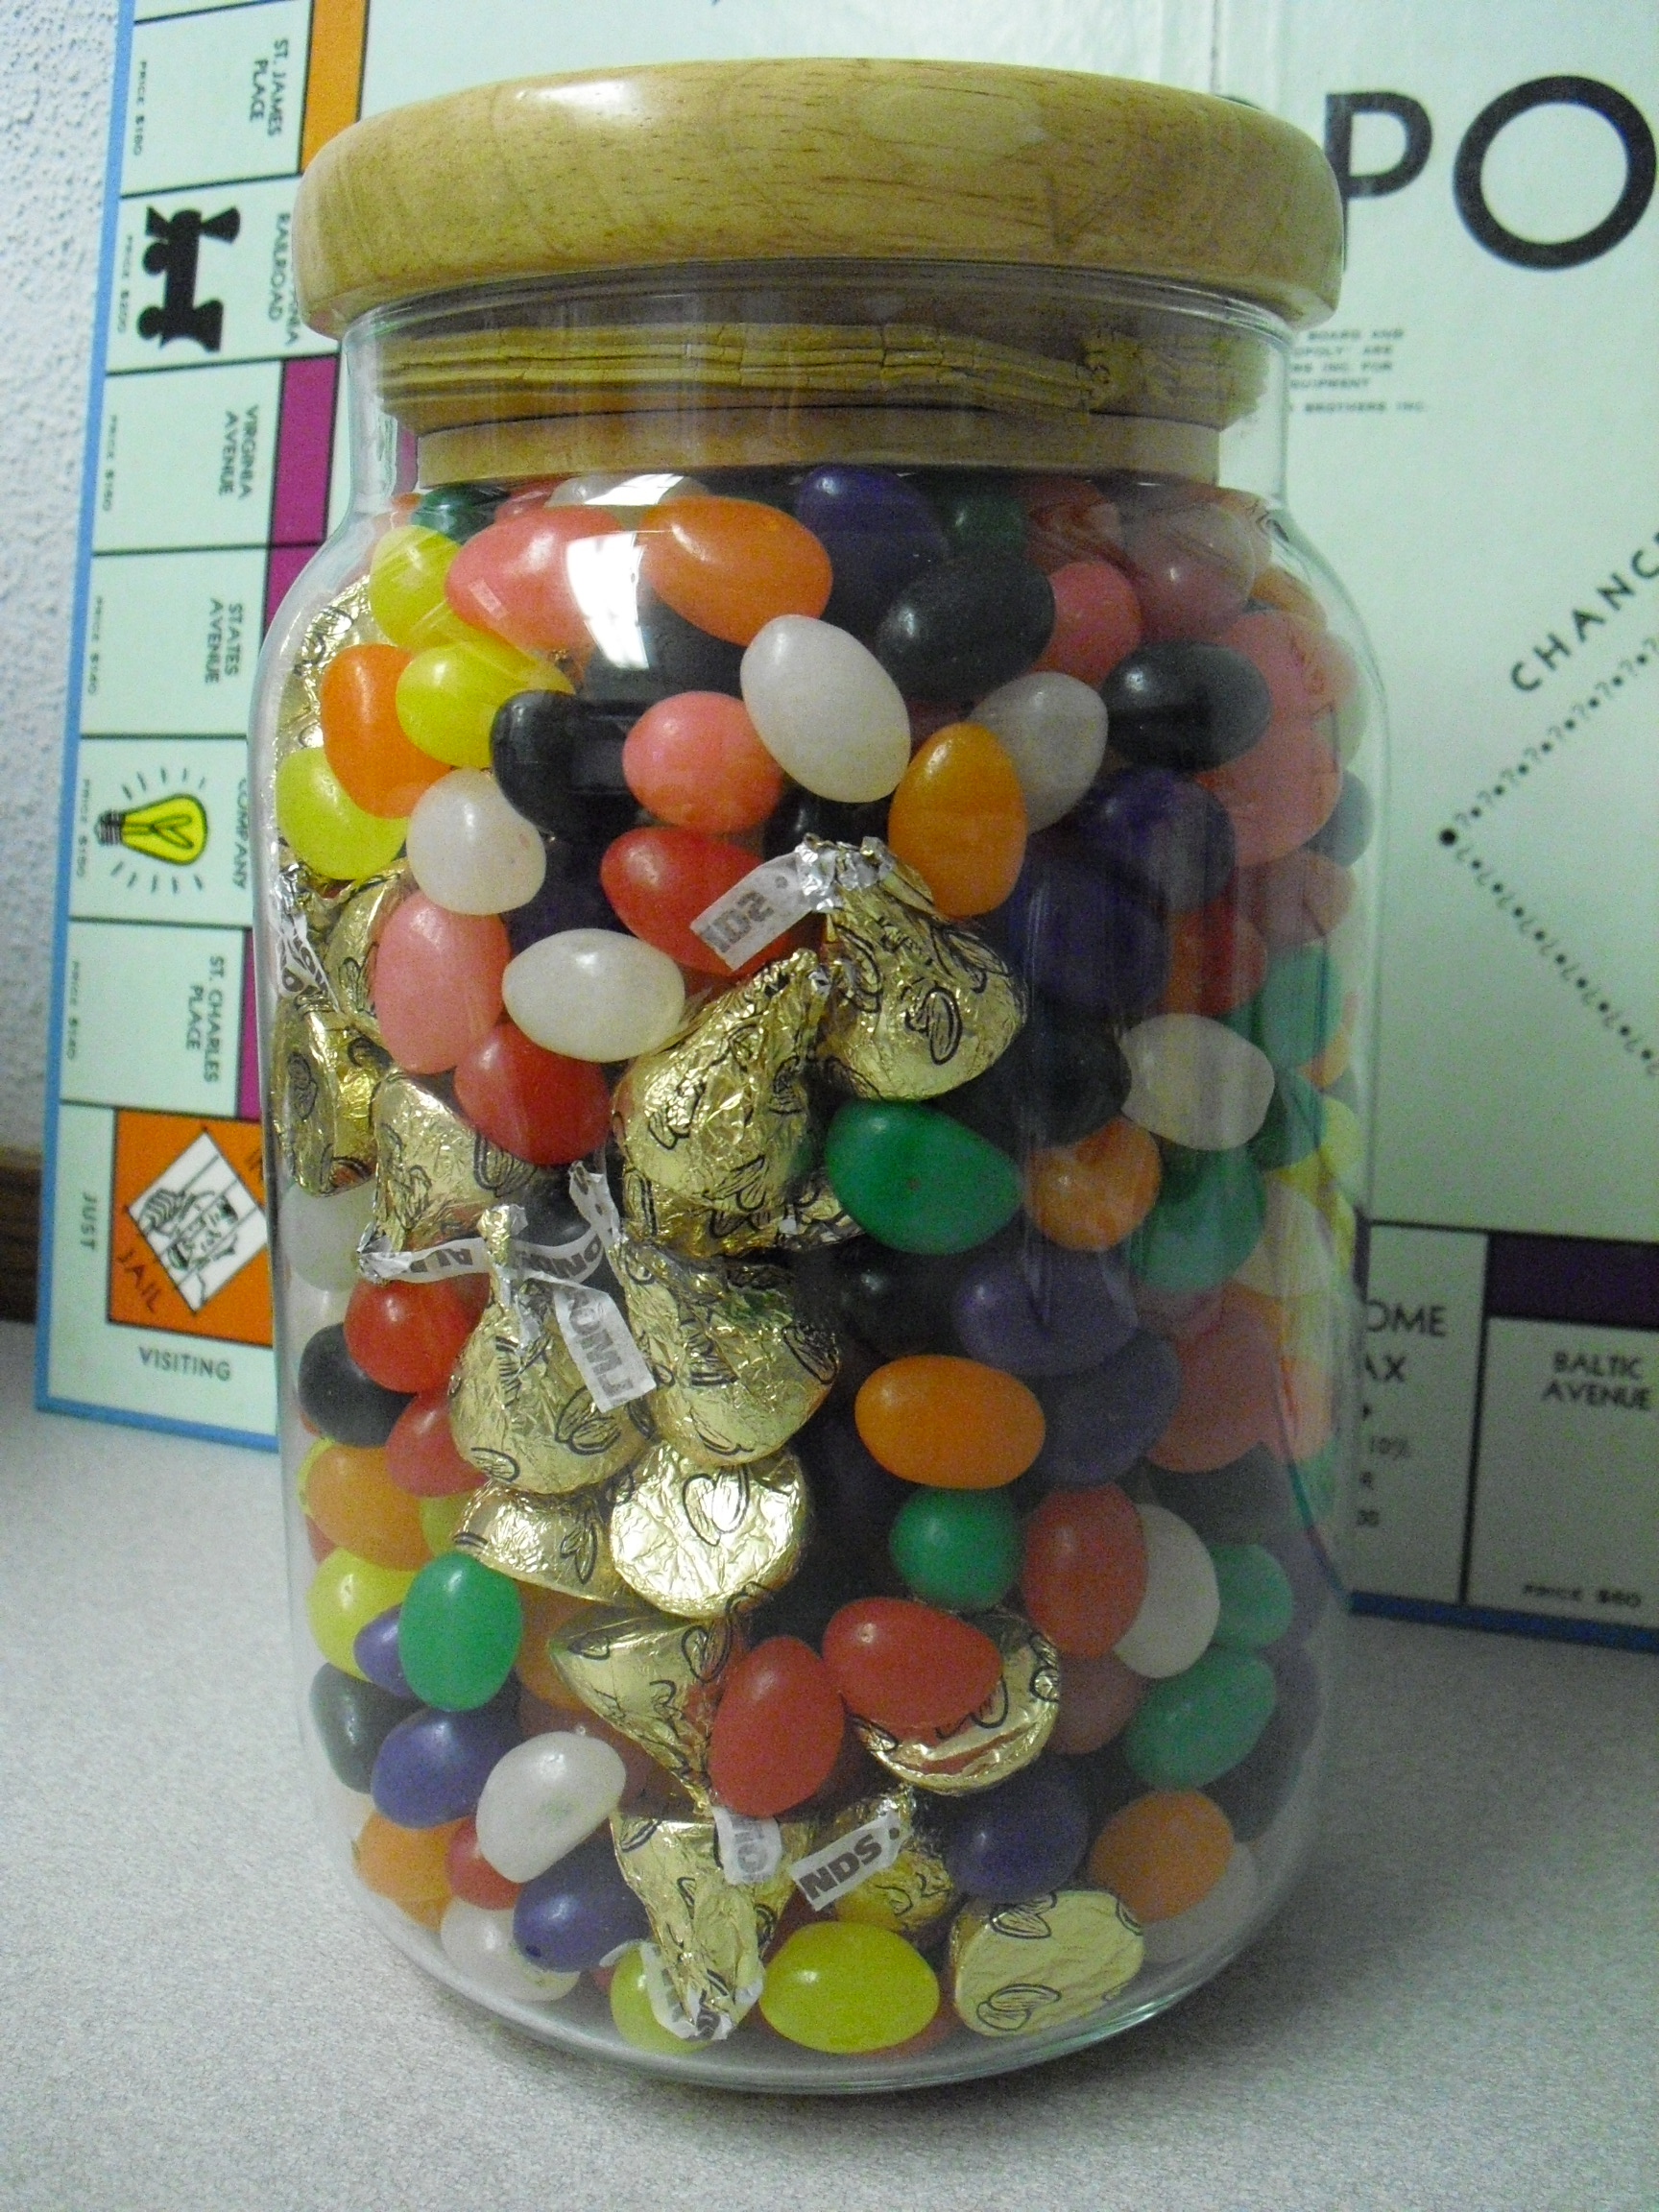 Counting Contest Guess Jelly Bean